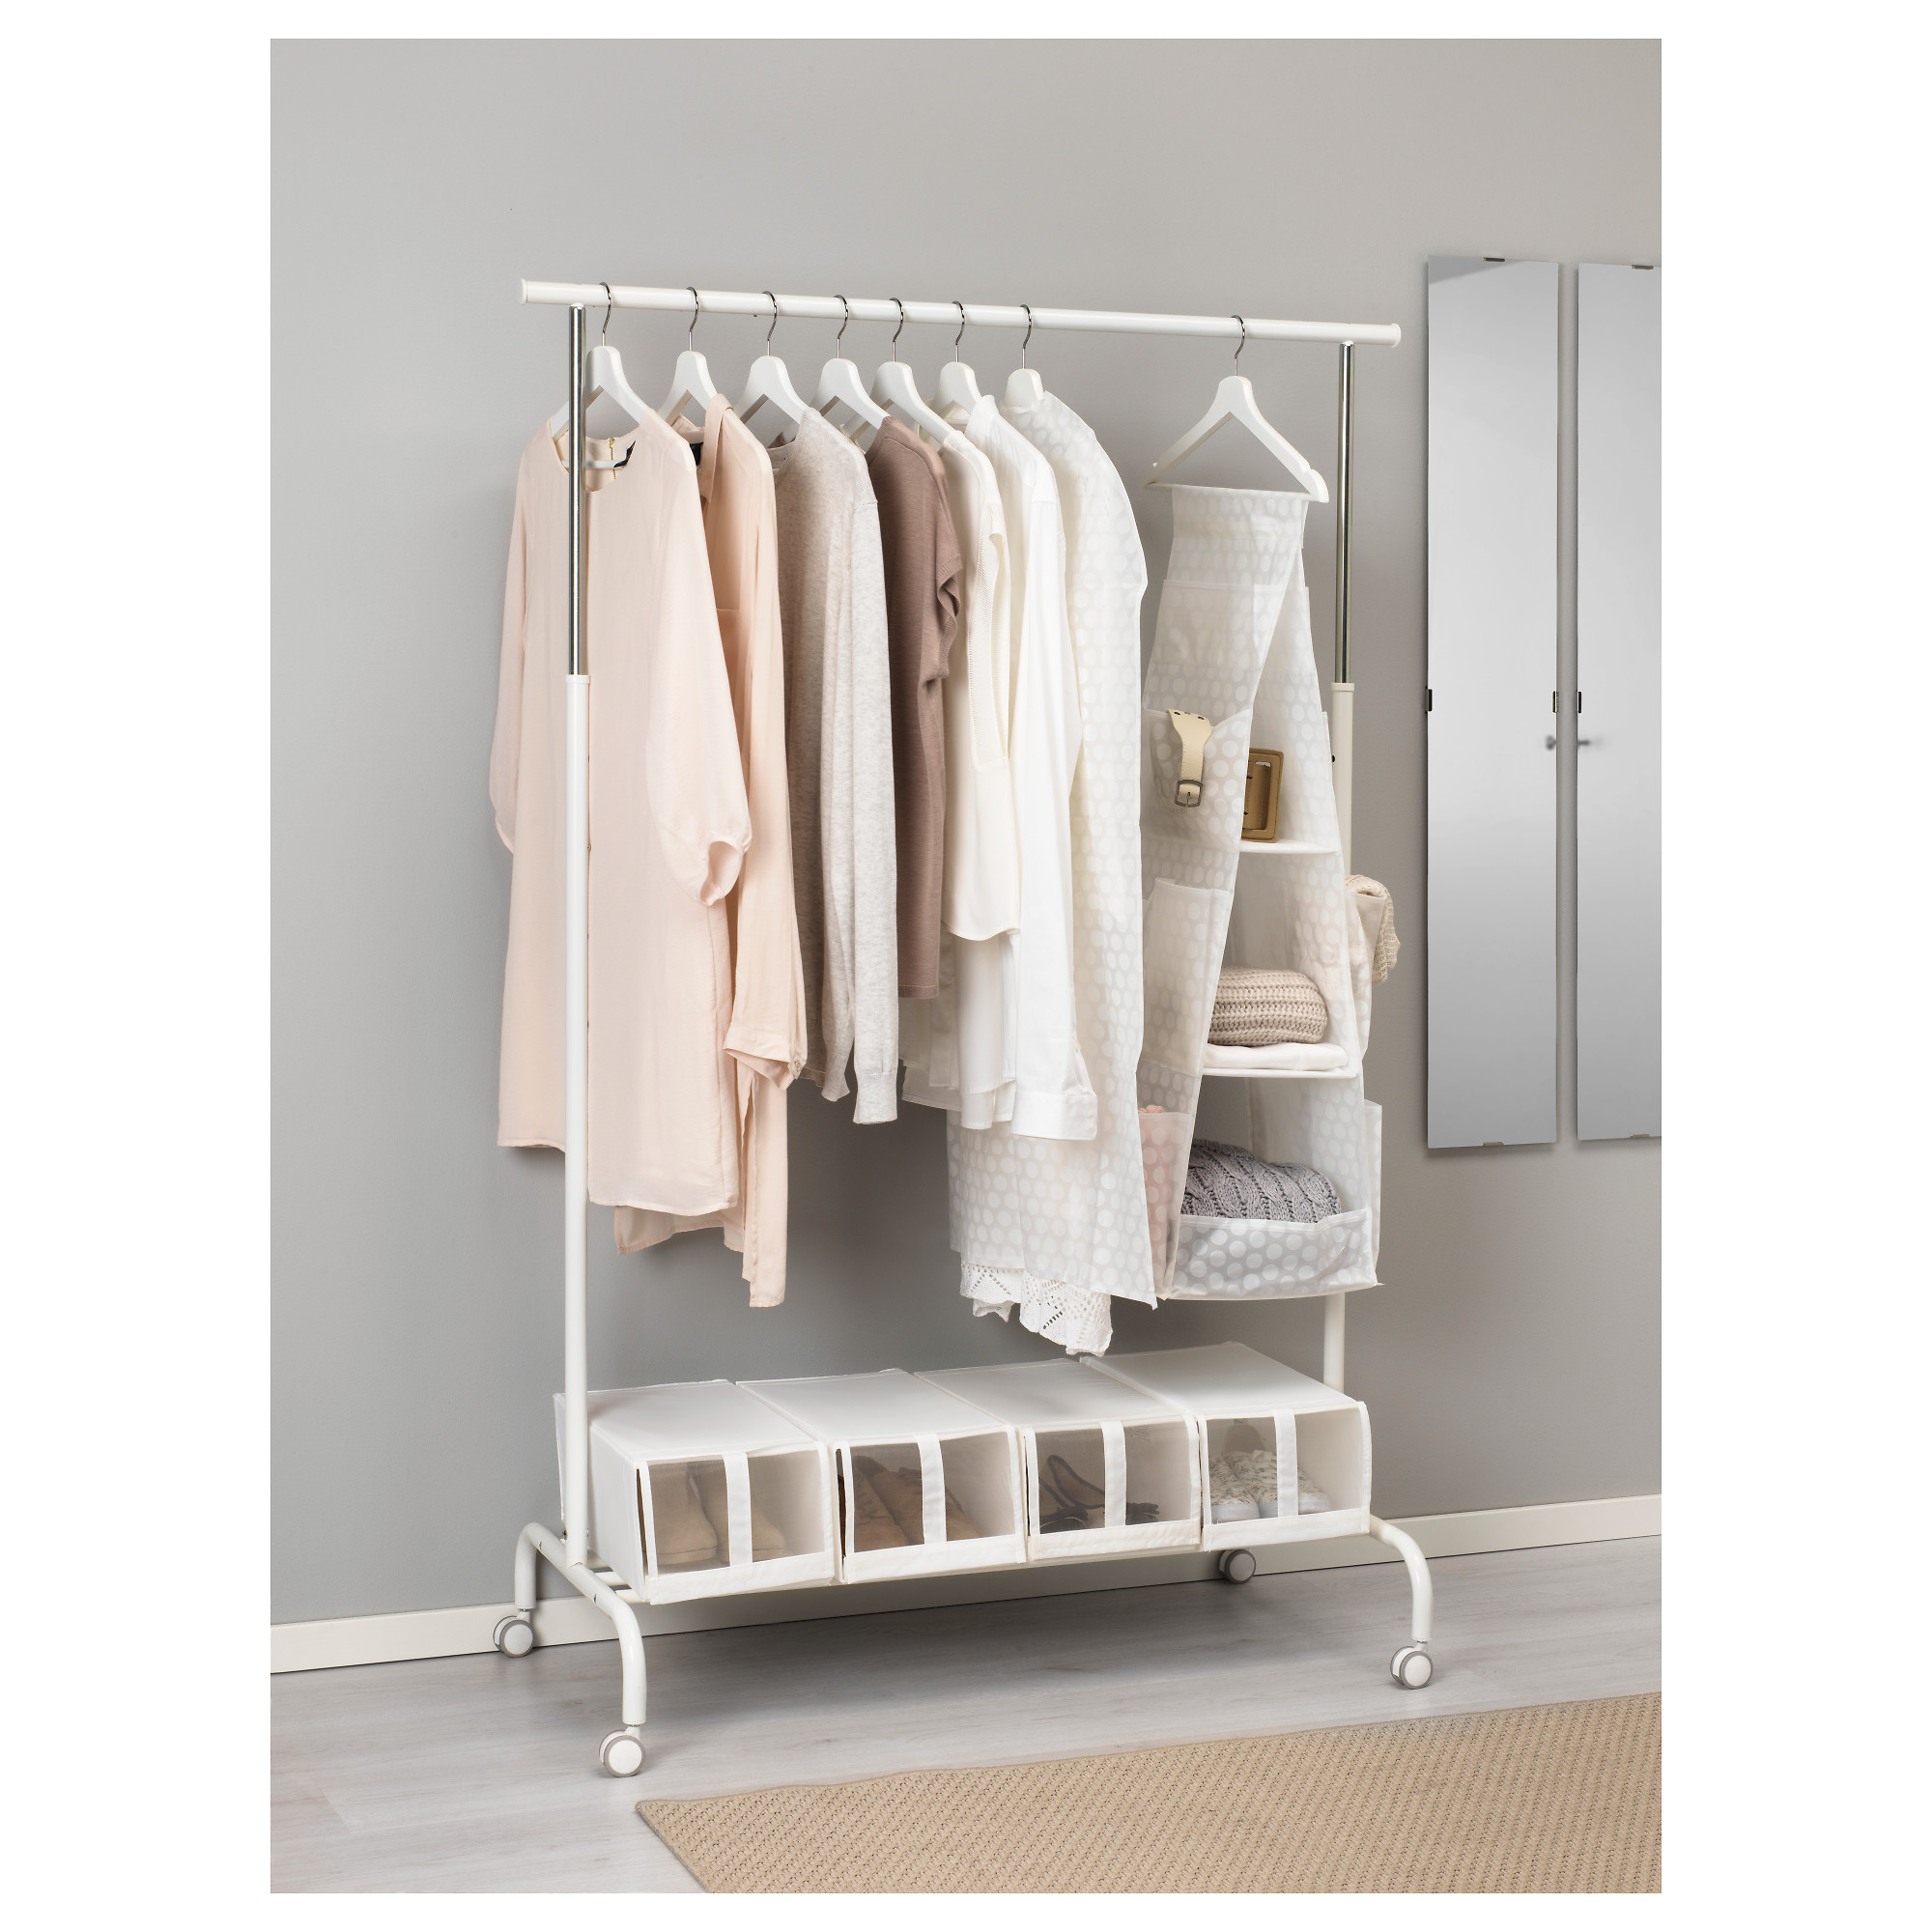 Exceptionnel PLURING Hanging Storage With 3 Compartments   IKEA